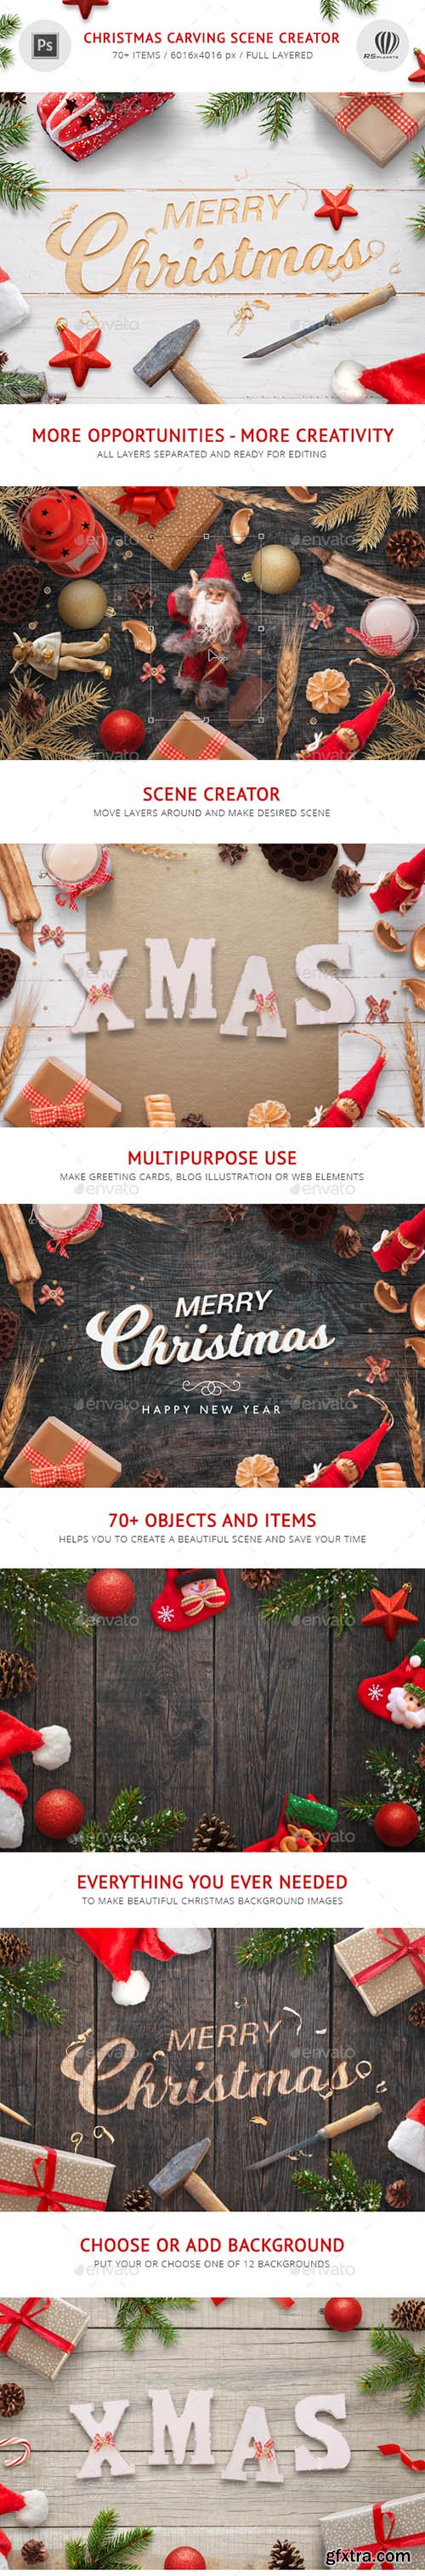 Graphicriver Christmas Carving Scene Creator 21112582